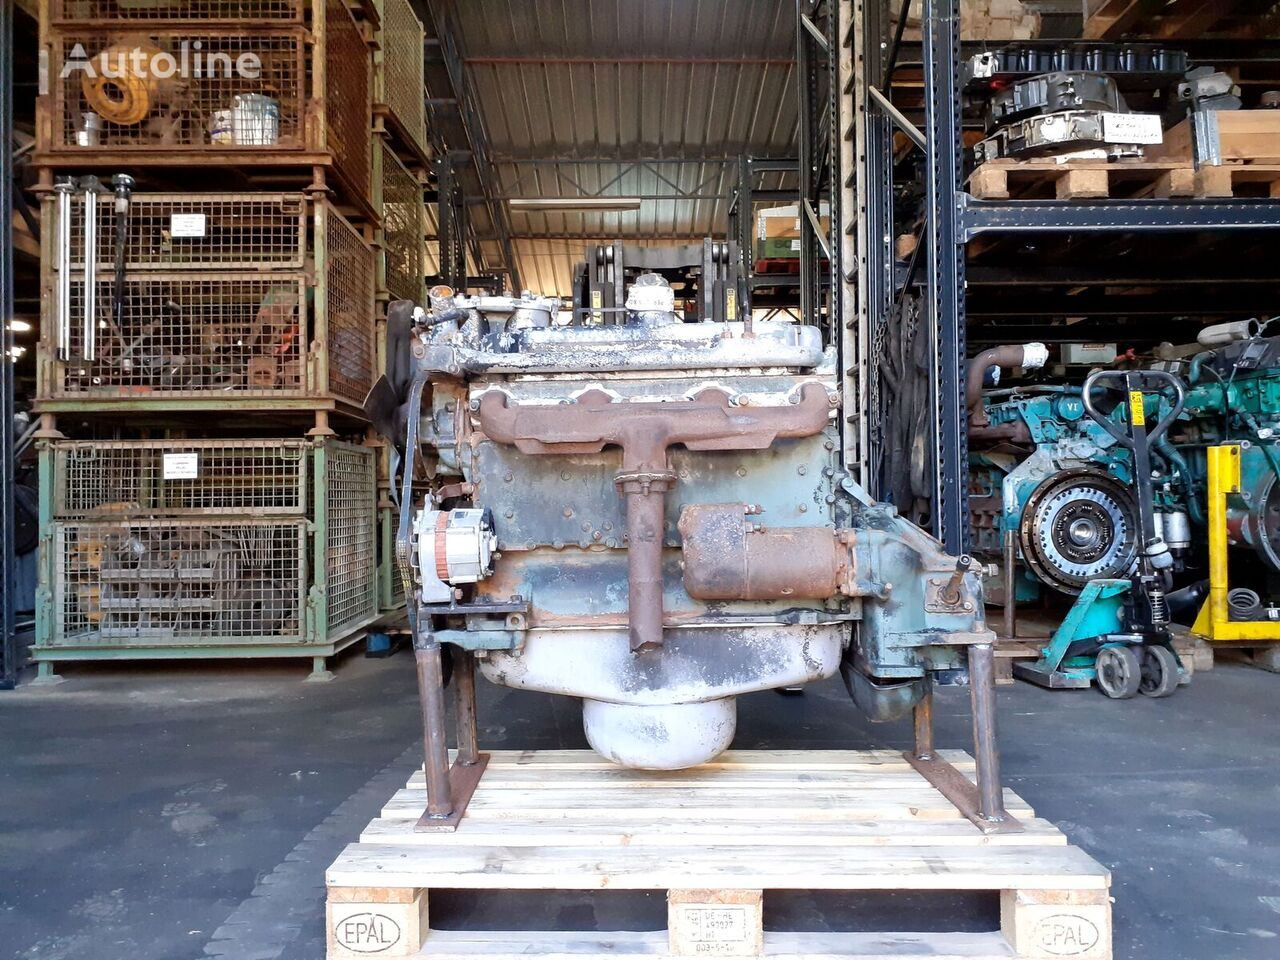 MERCEDES-BENZ OM 352 (Used) engine for truck